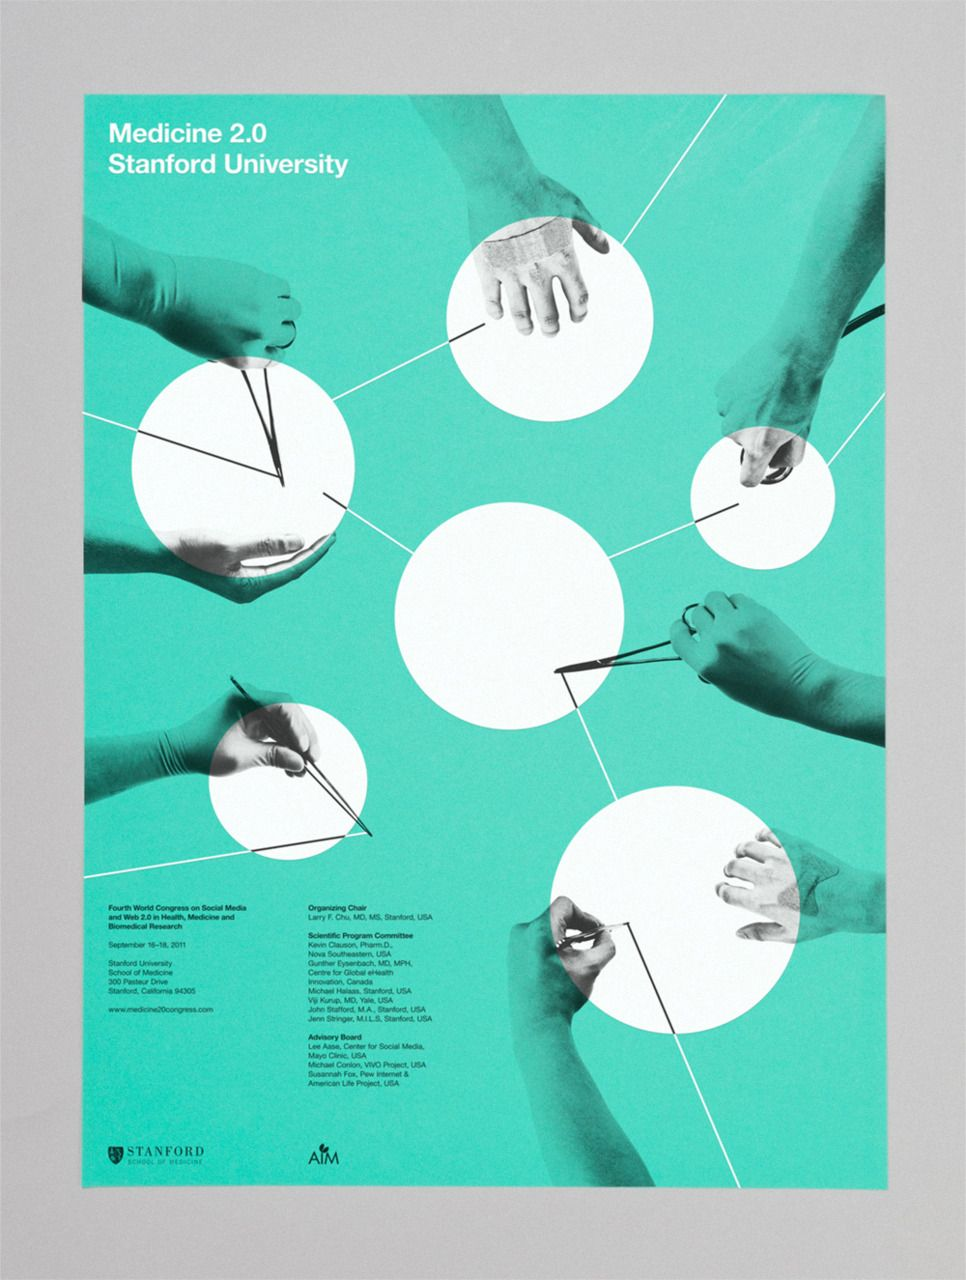 Poster design layout principles - Find This Pin And More On Graphic Design By Rbirla Medicine Poster